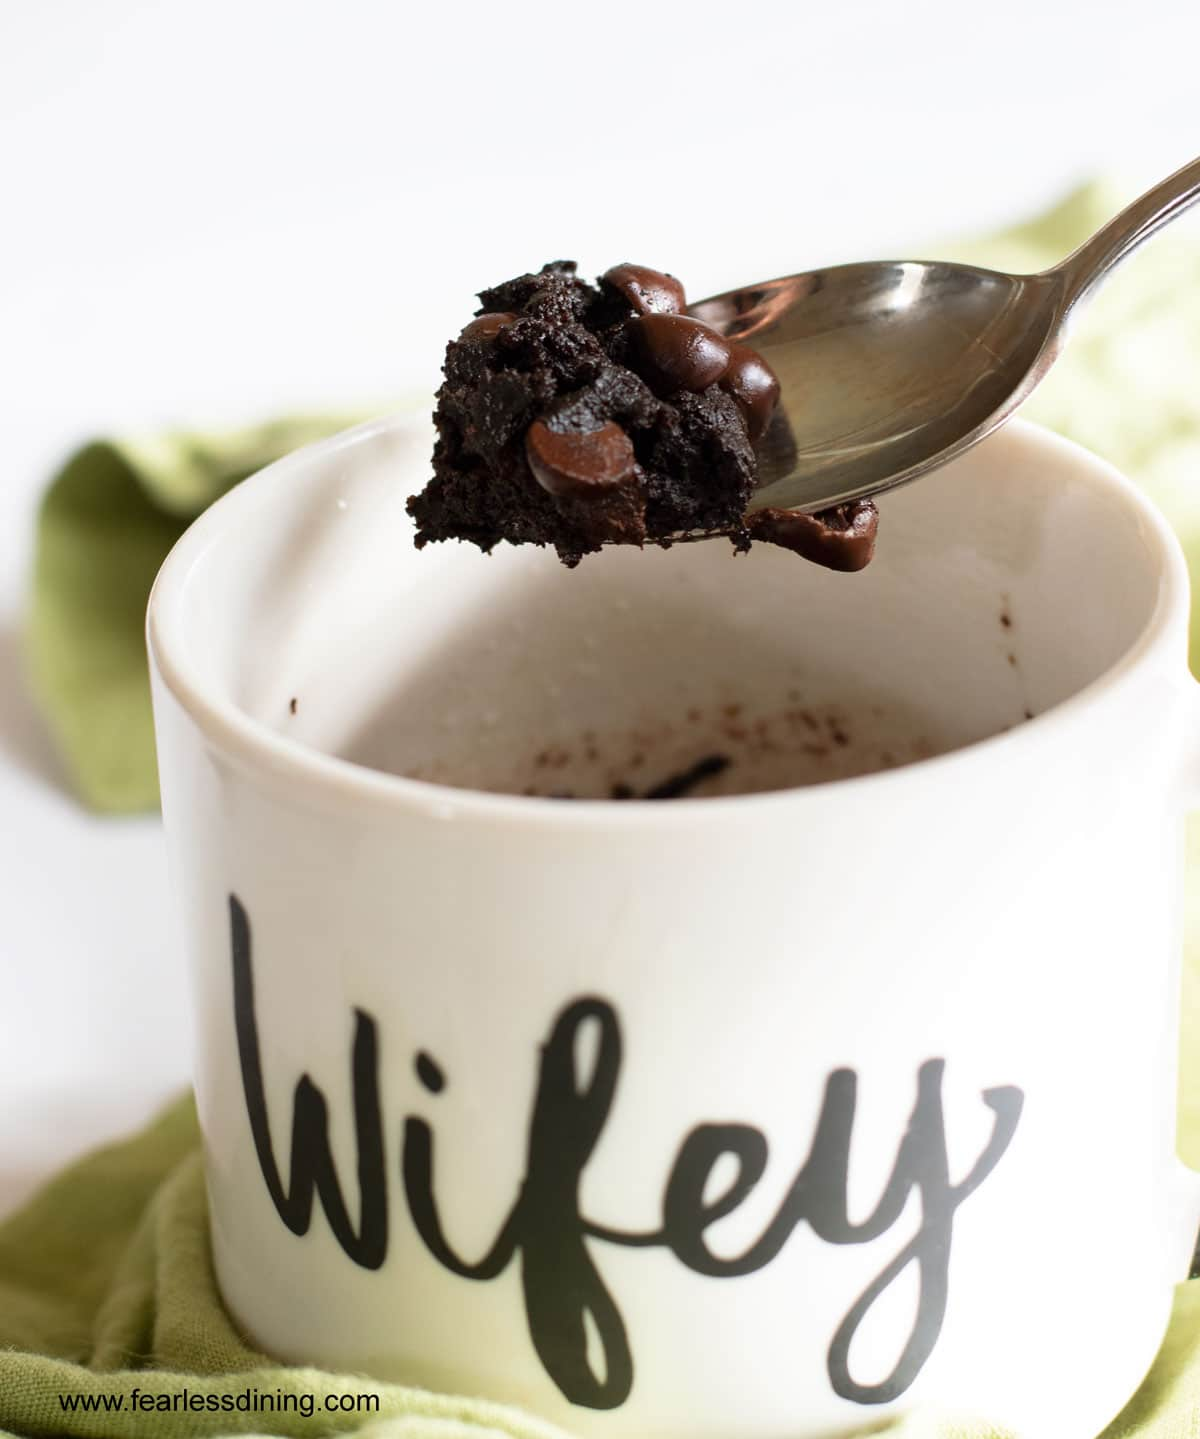 a spoonful of cooked gluten free mug brownie